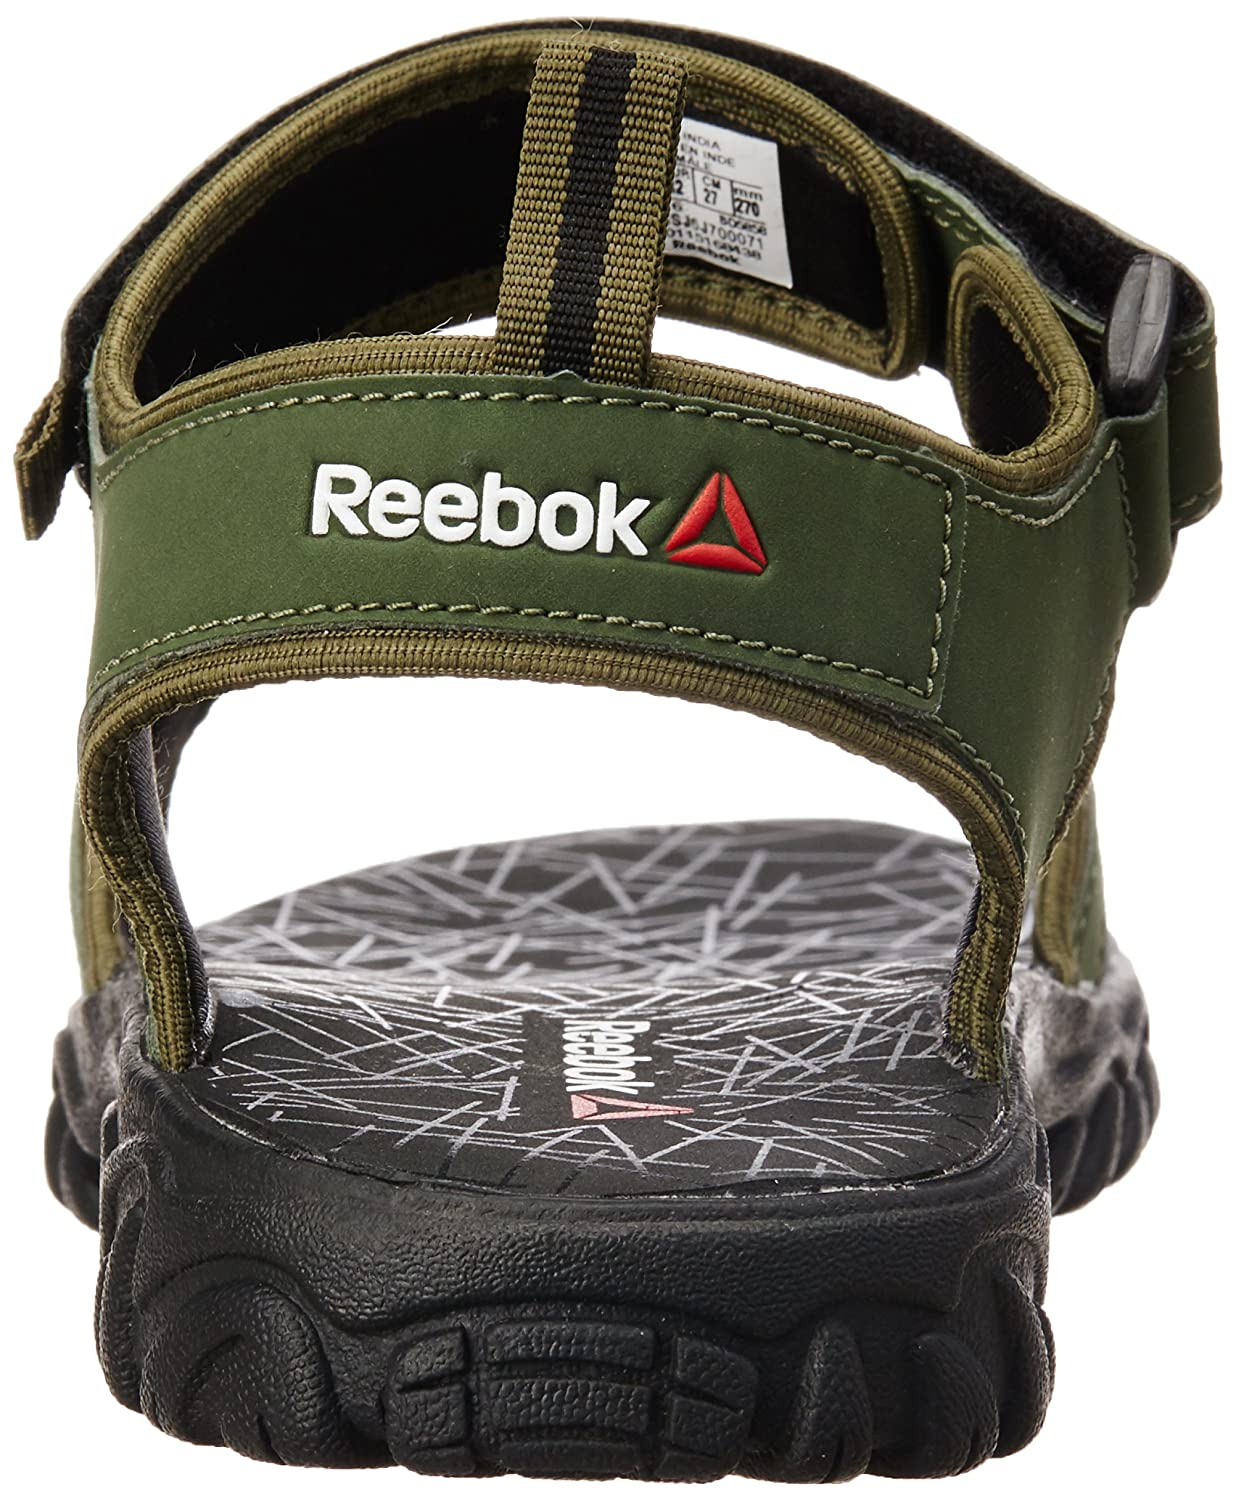 f86ace7cf Reebok Men s Aztrix Primal Green and Black Sandals - 11 UK India (45.5  EU)(12 US)  Buy Online at Low Prices in India - Amazon.in